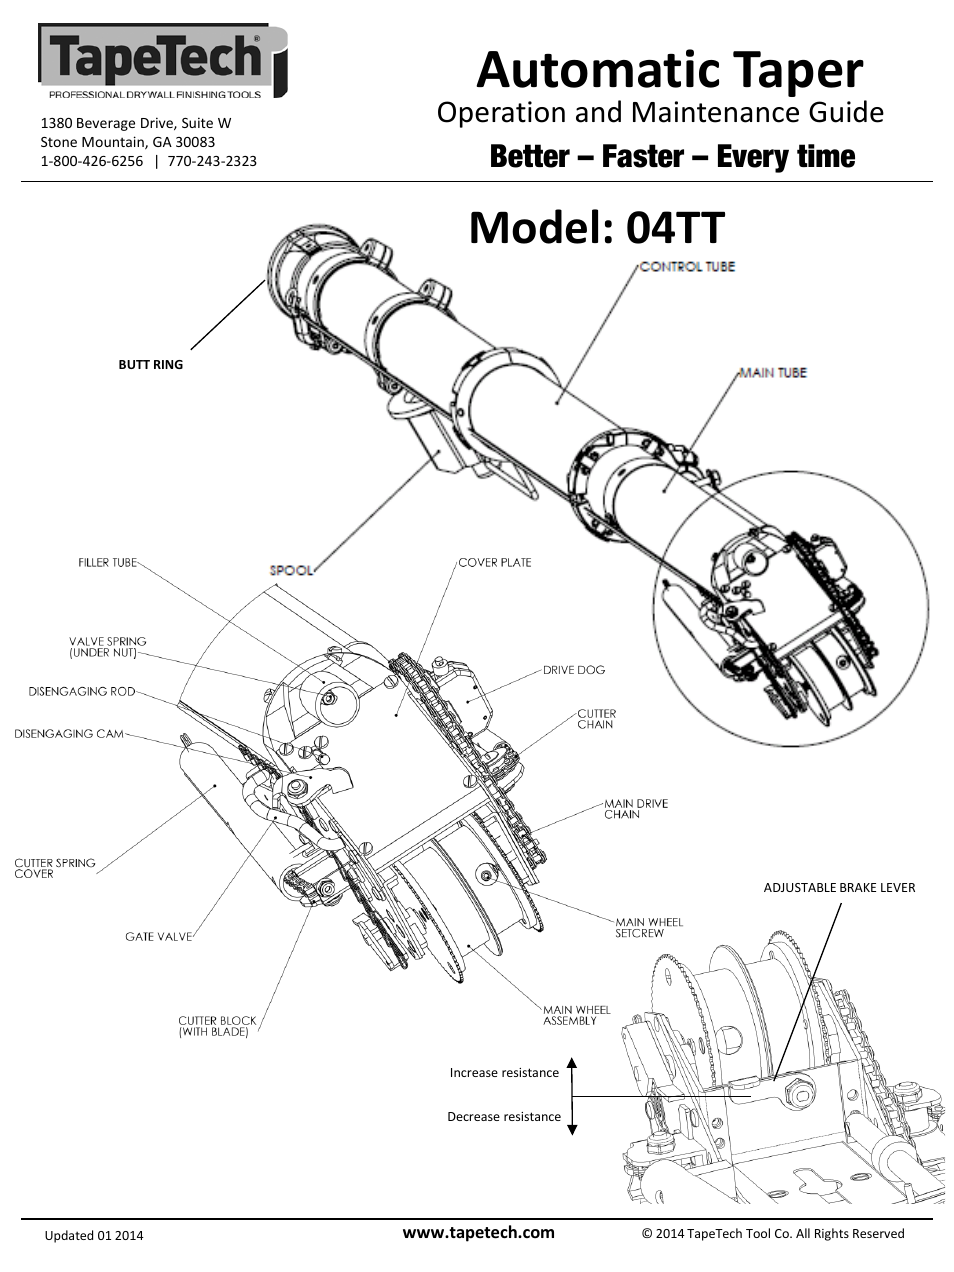 tapetech tt easyclean automatic taper user manual   pages, schematic